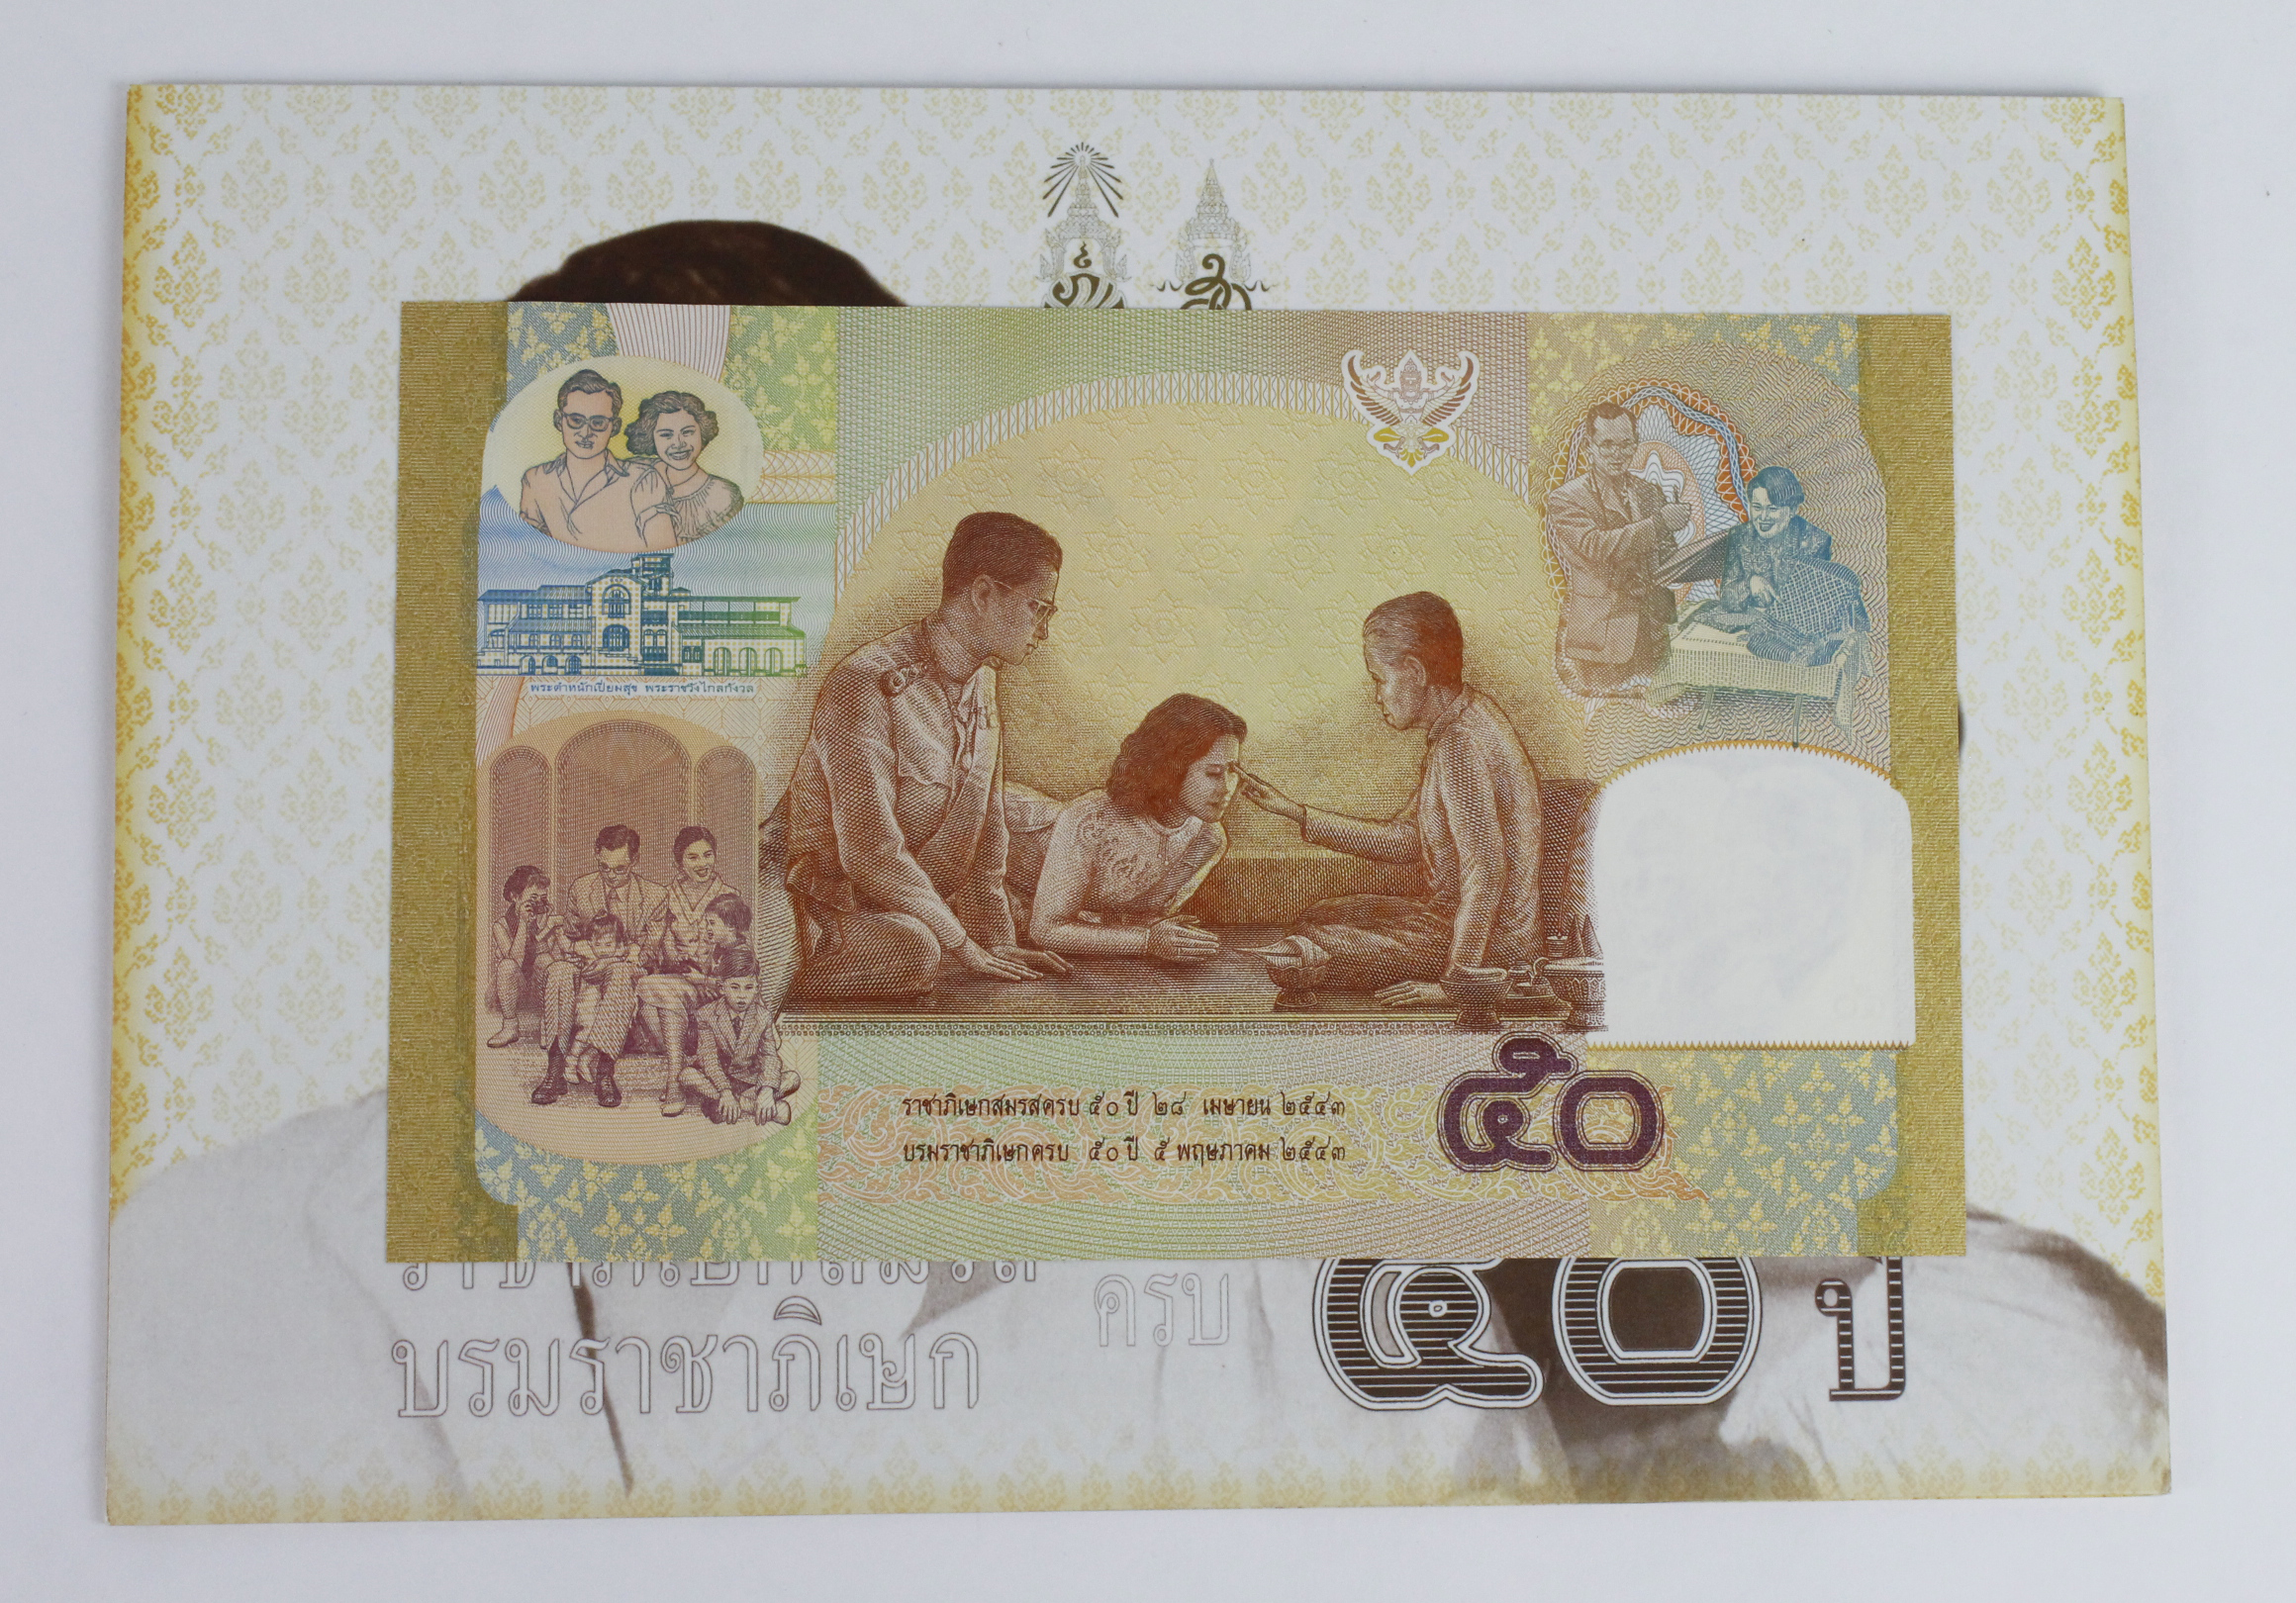 Thailand 50 Baht issued 2000, commemorative note Golden Wedding Anniversary, in presentation folder, - Image 2 of 2